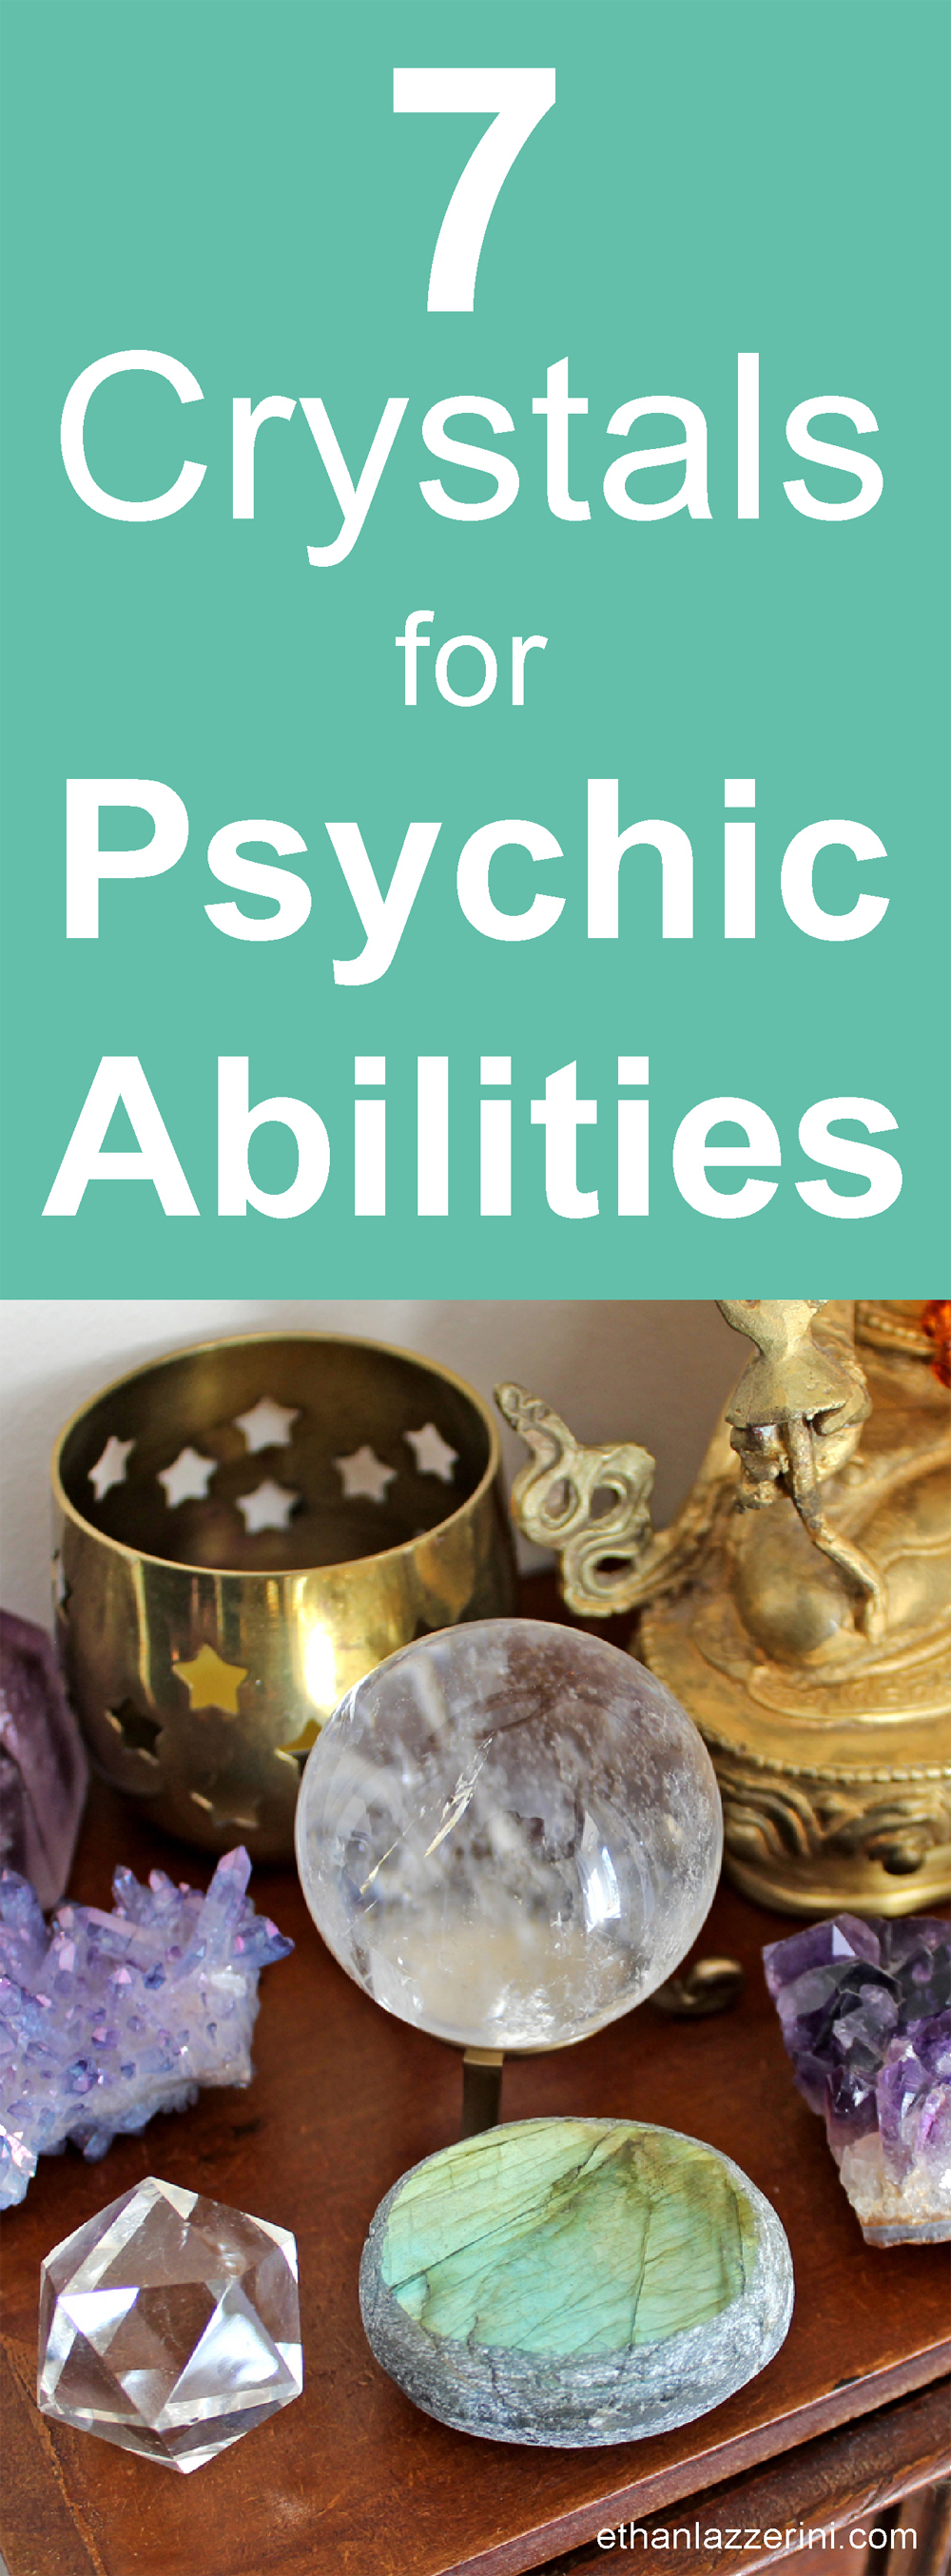 Crystals for psychic abilities